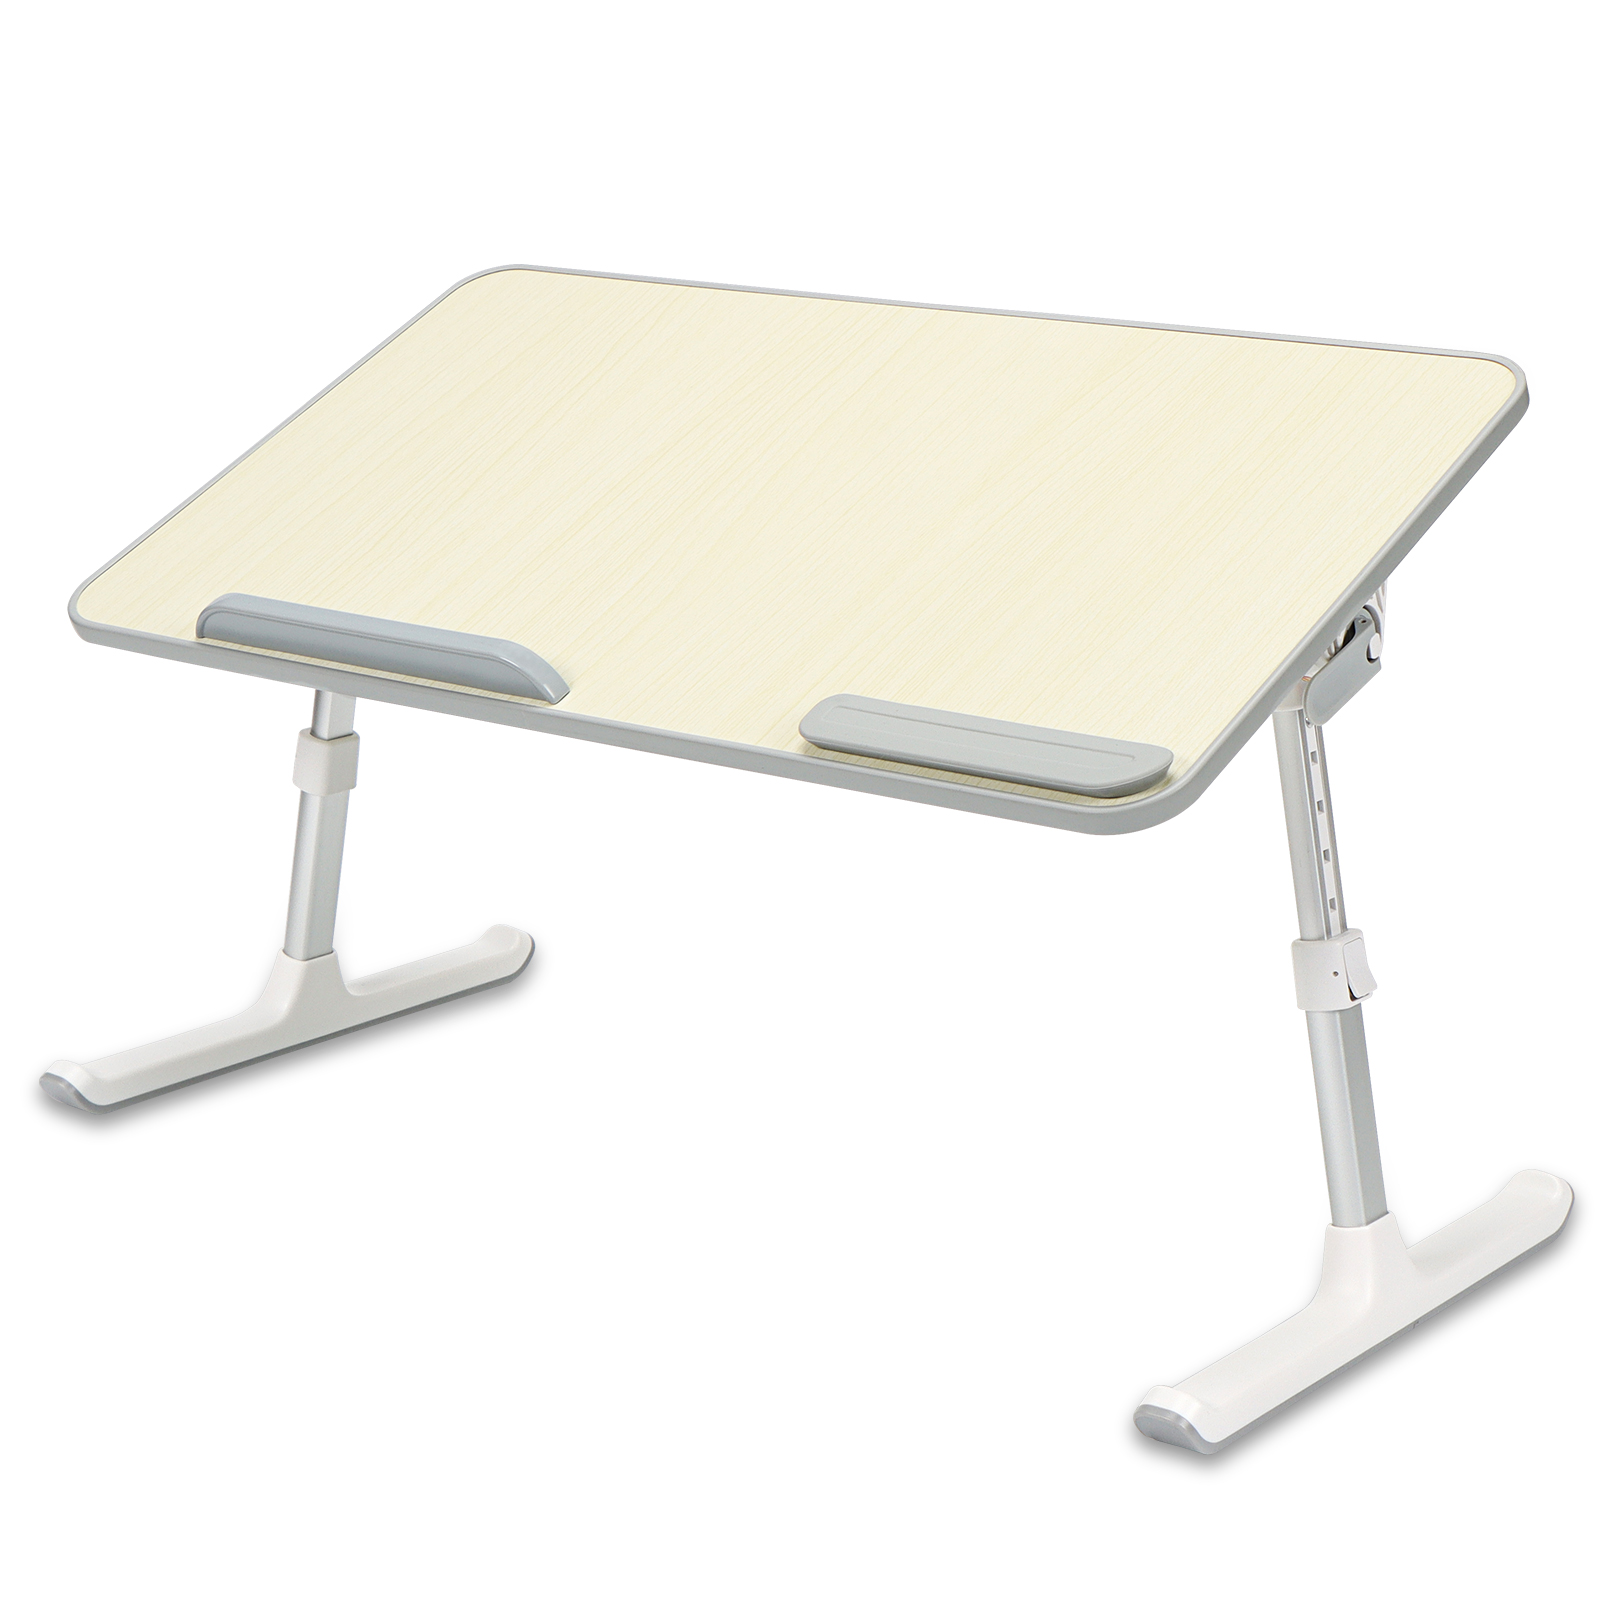 Ibama Portable Laptop Stand Table Height And Angle Adjustable Desk Lightweight Folding Table For Writing And Working In Bed Sofa And Couch Updated Walmart Com Walmart Com